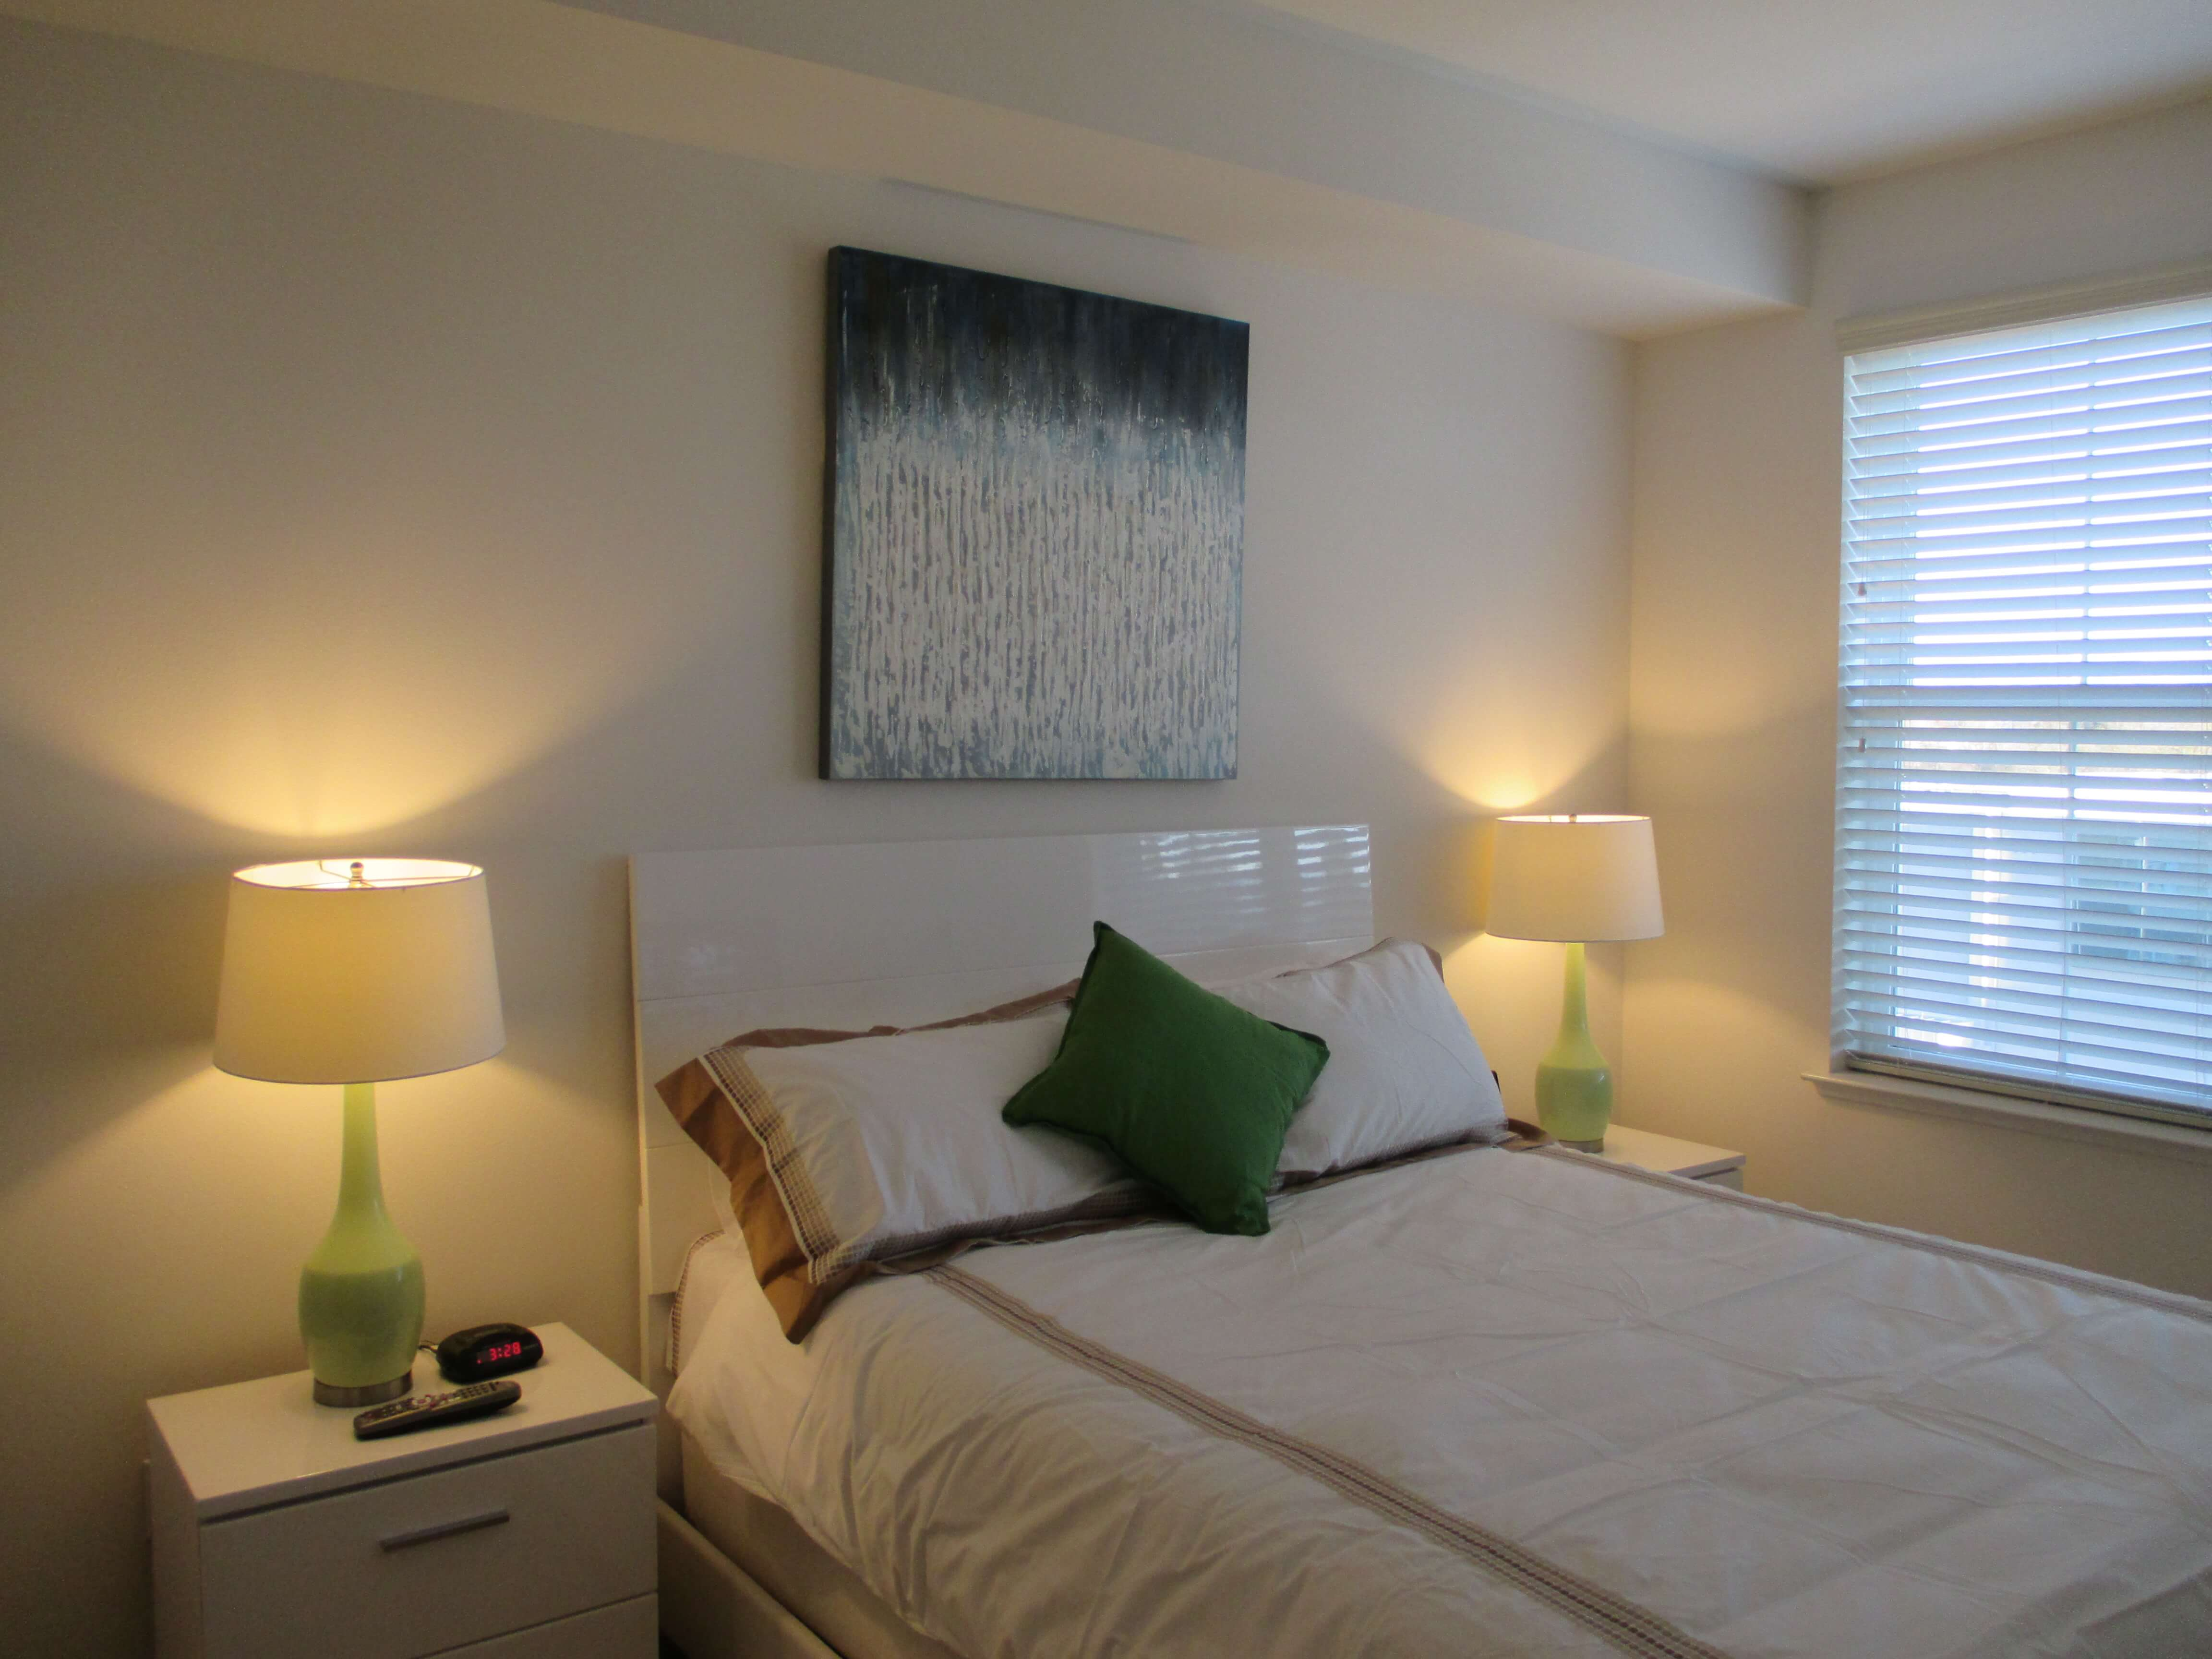 1 bedroom apartment san jose san jose 1 bedroom rental at 1 bedroom apartments san jose